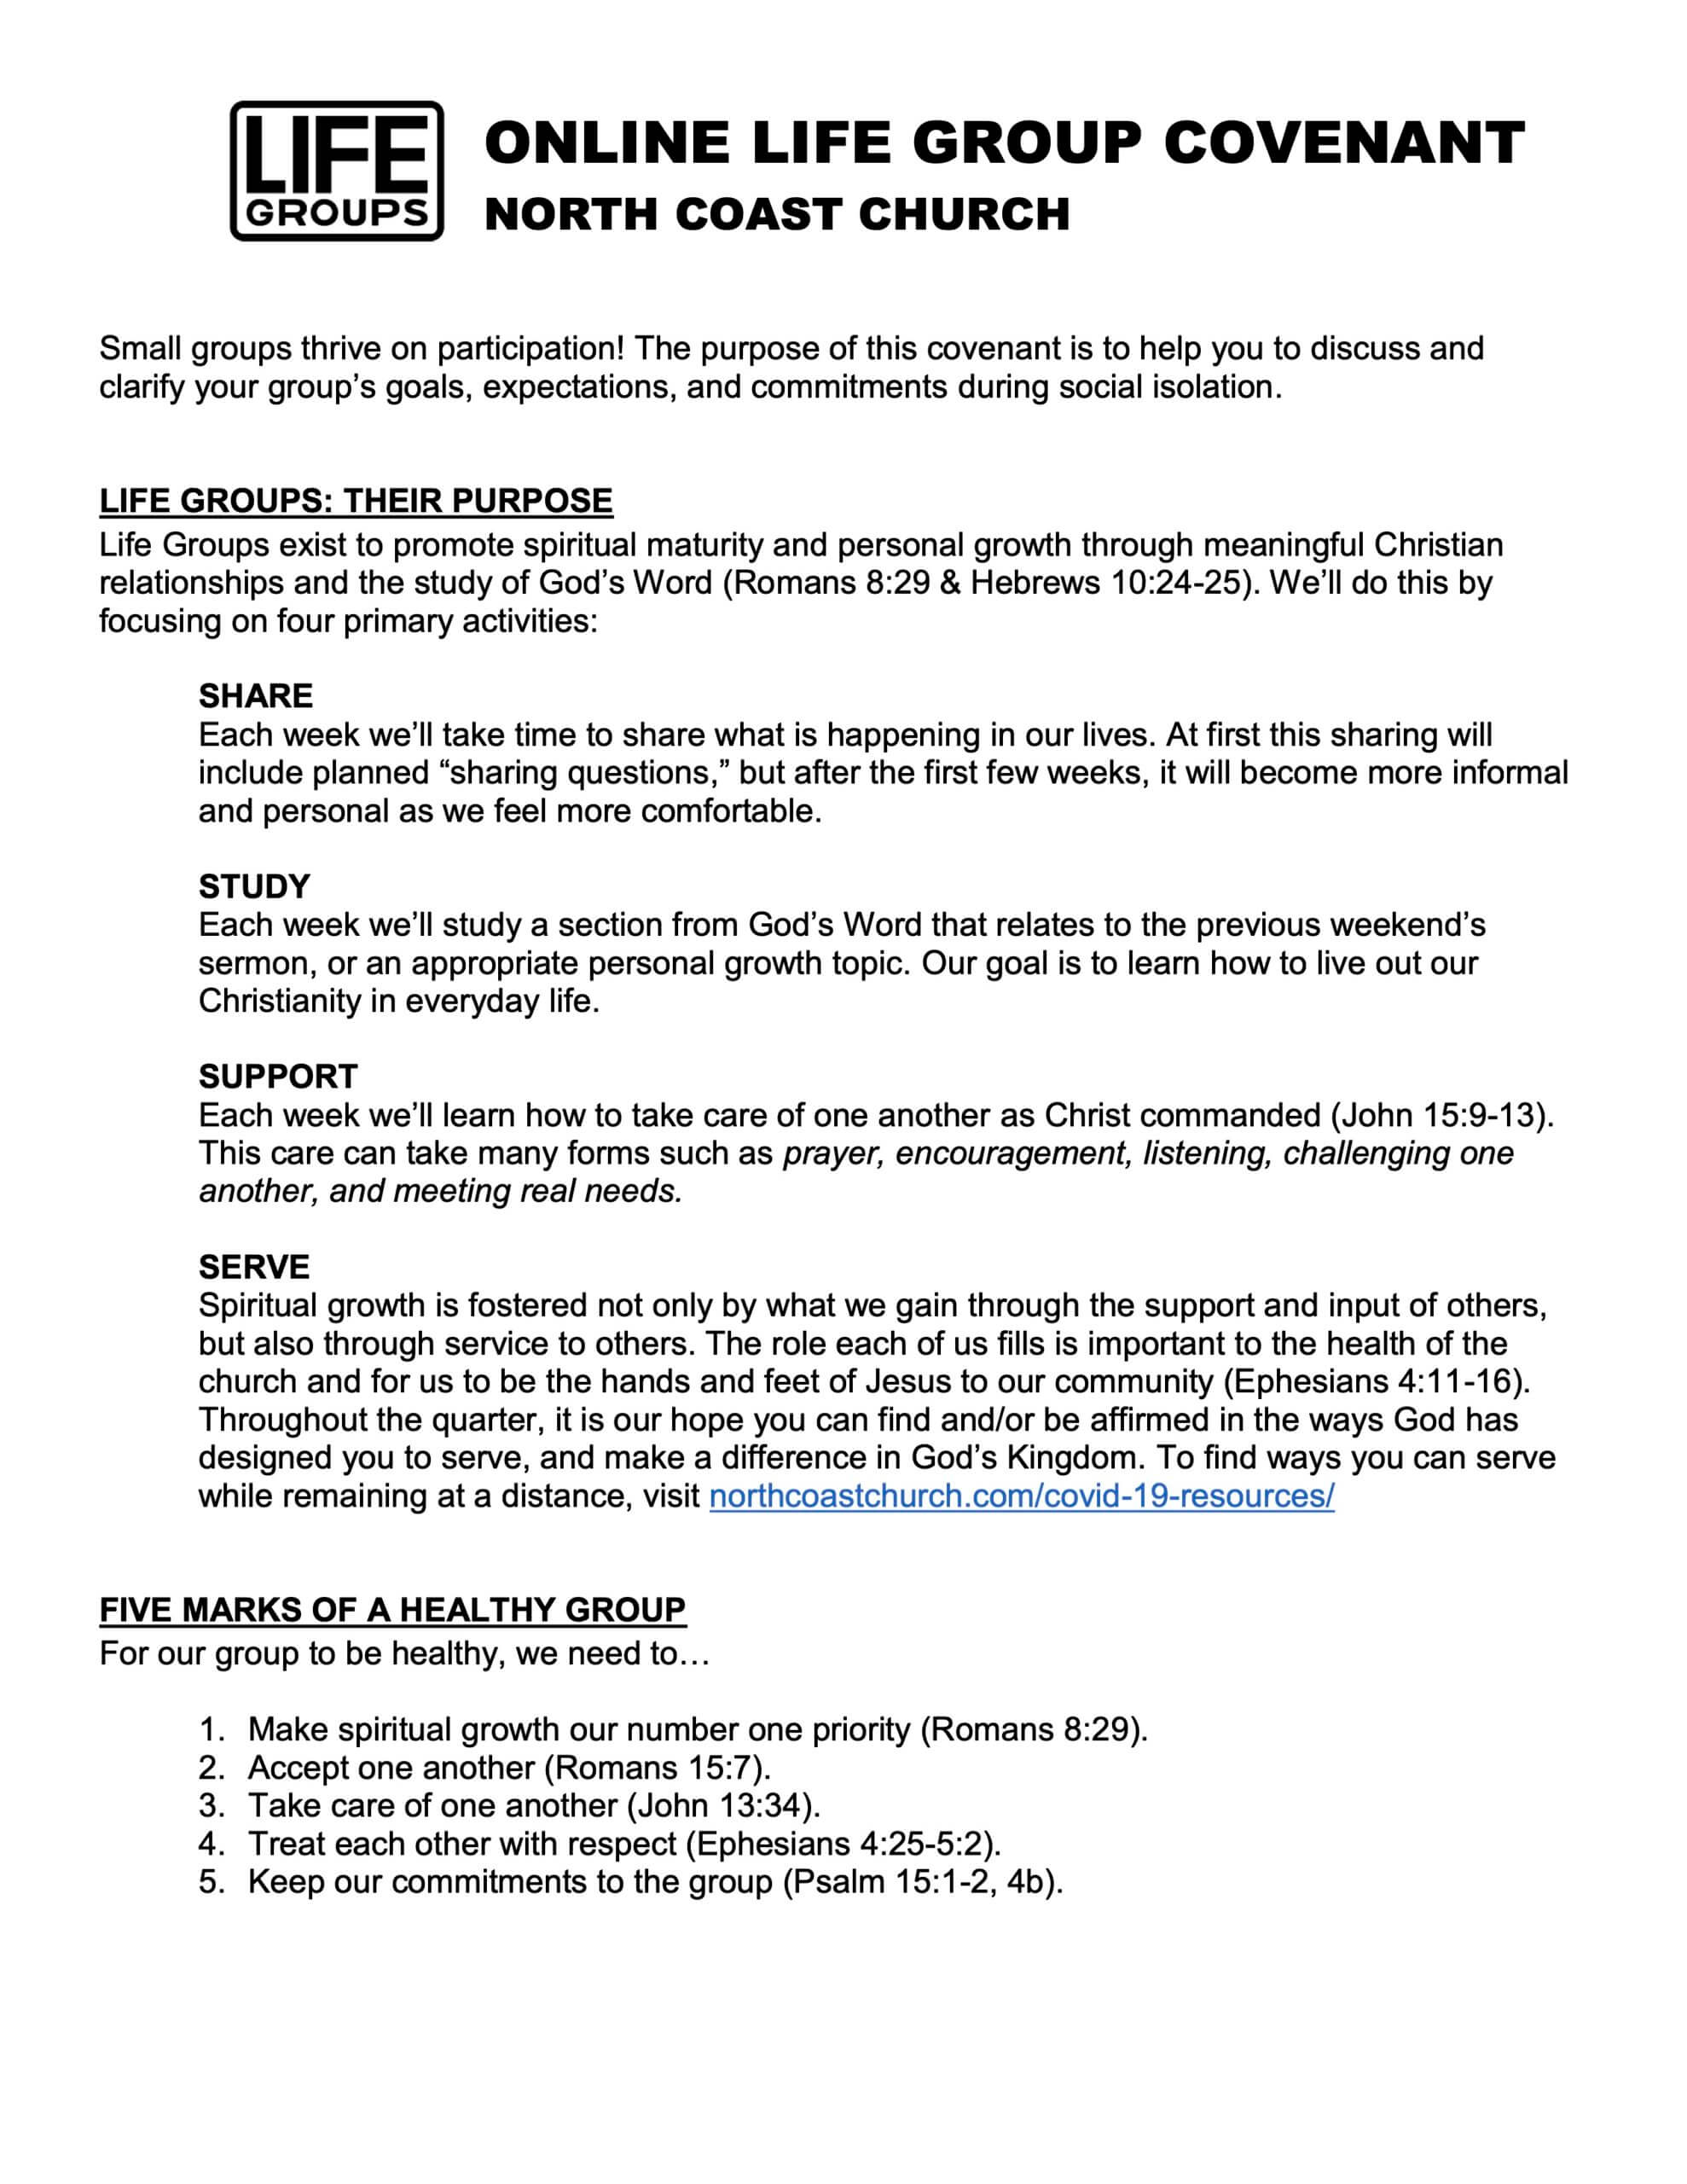 Life Group Covenant, North Coast Church, Page 1